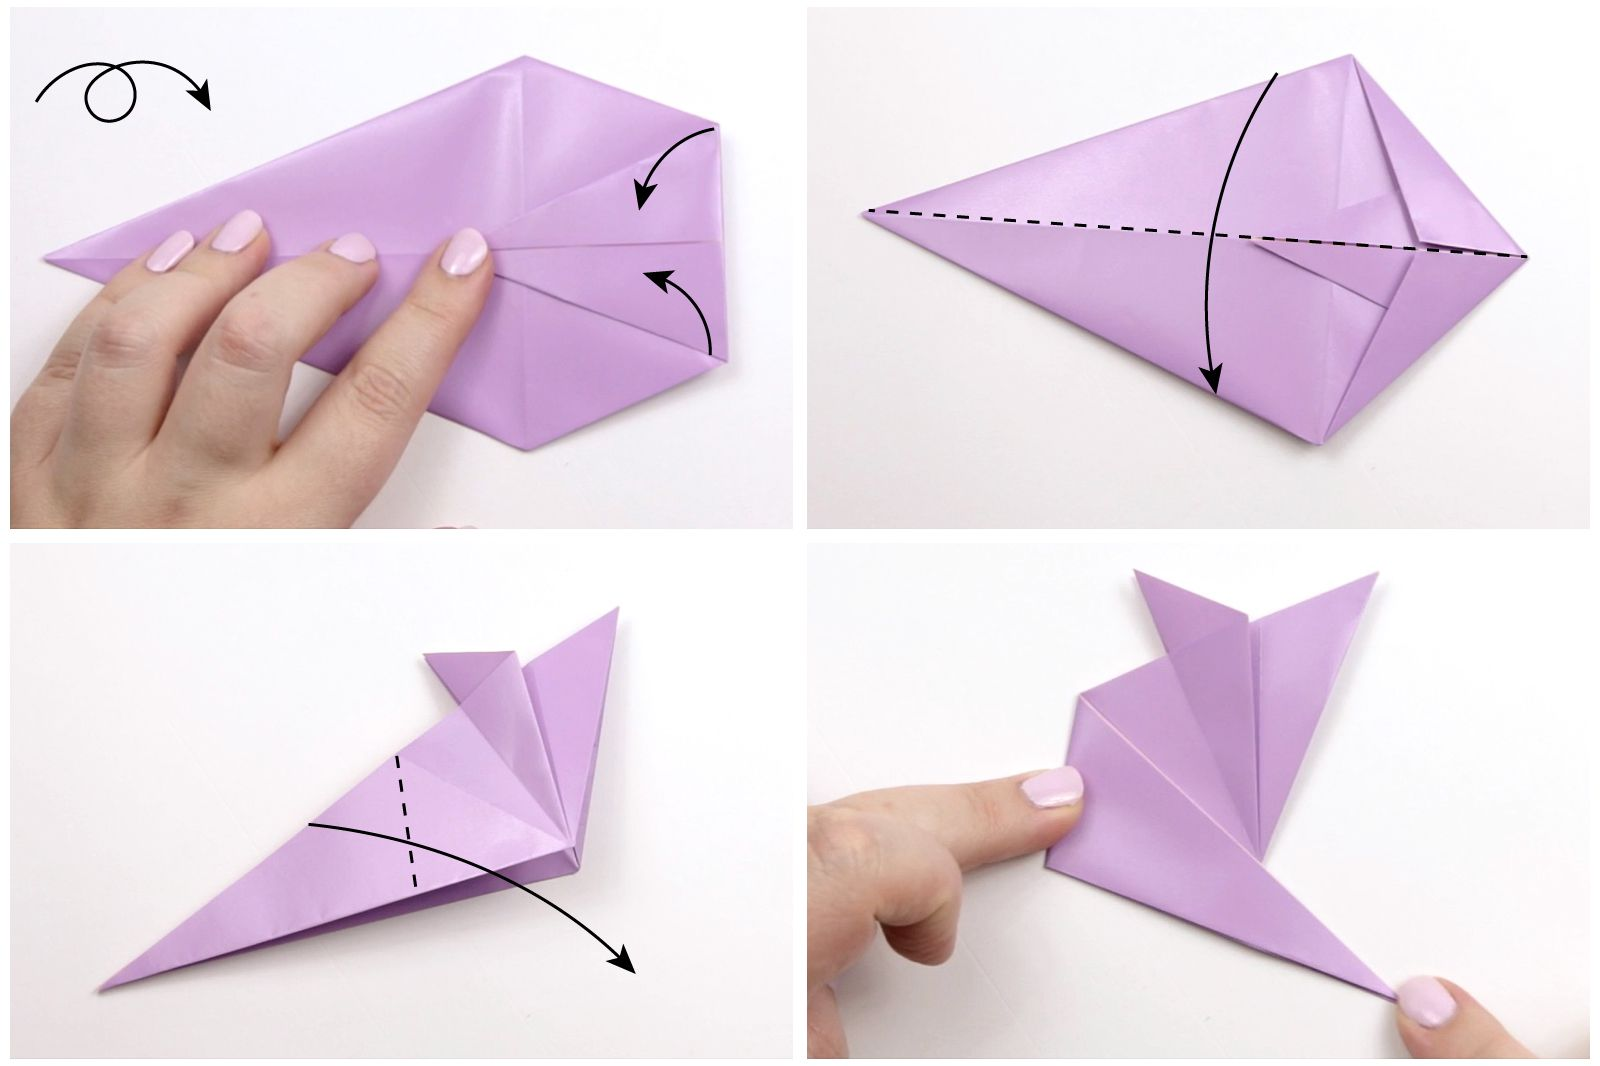 How to Make an Origami Mouse Origami Mouse Diagram on